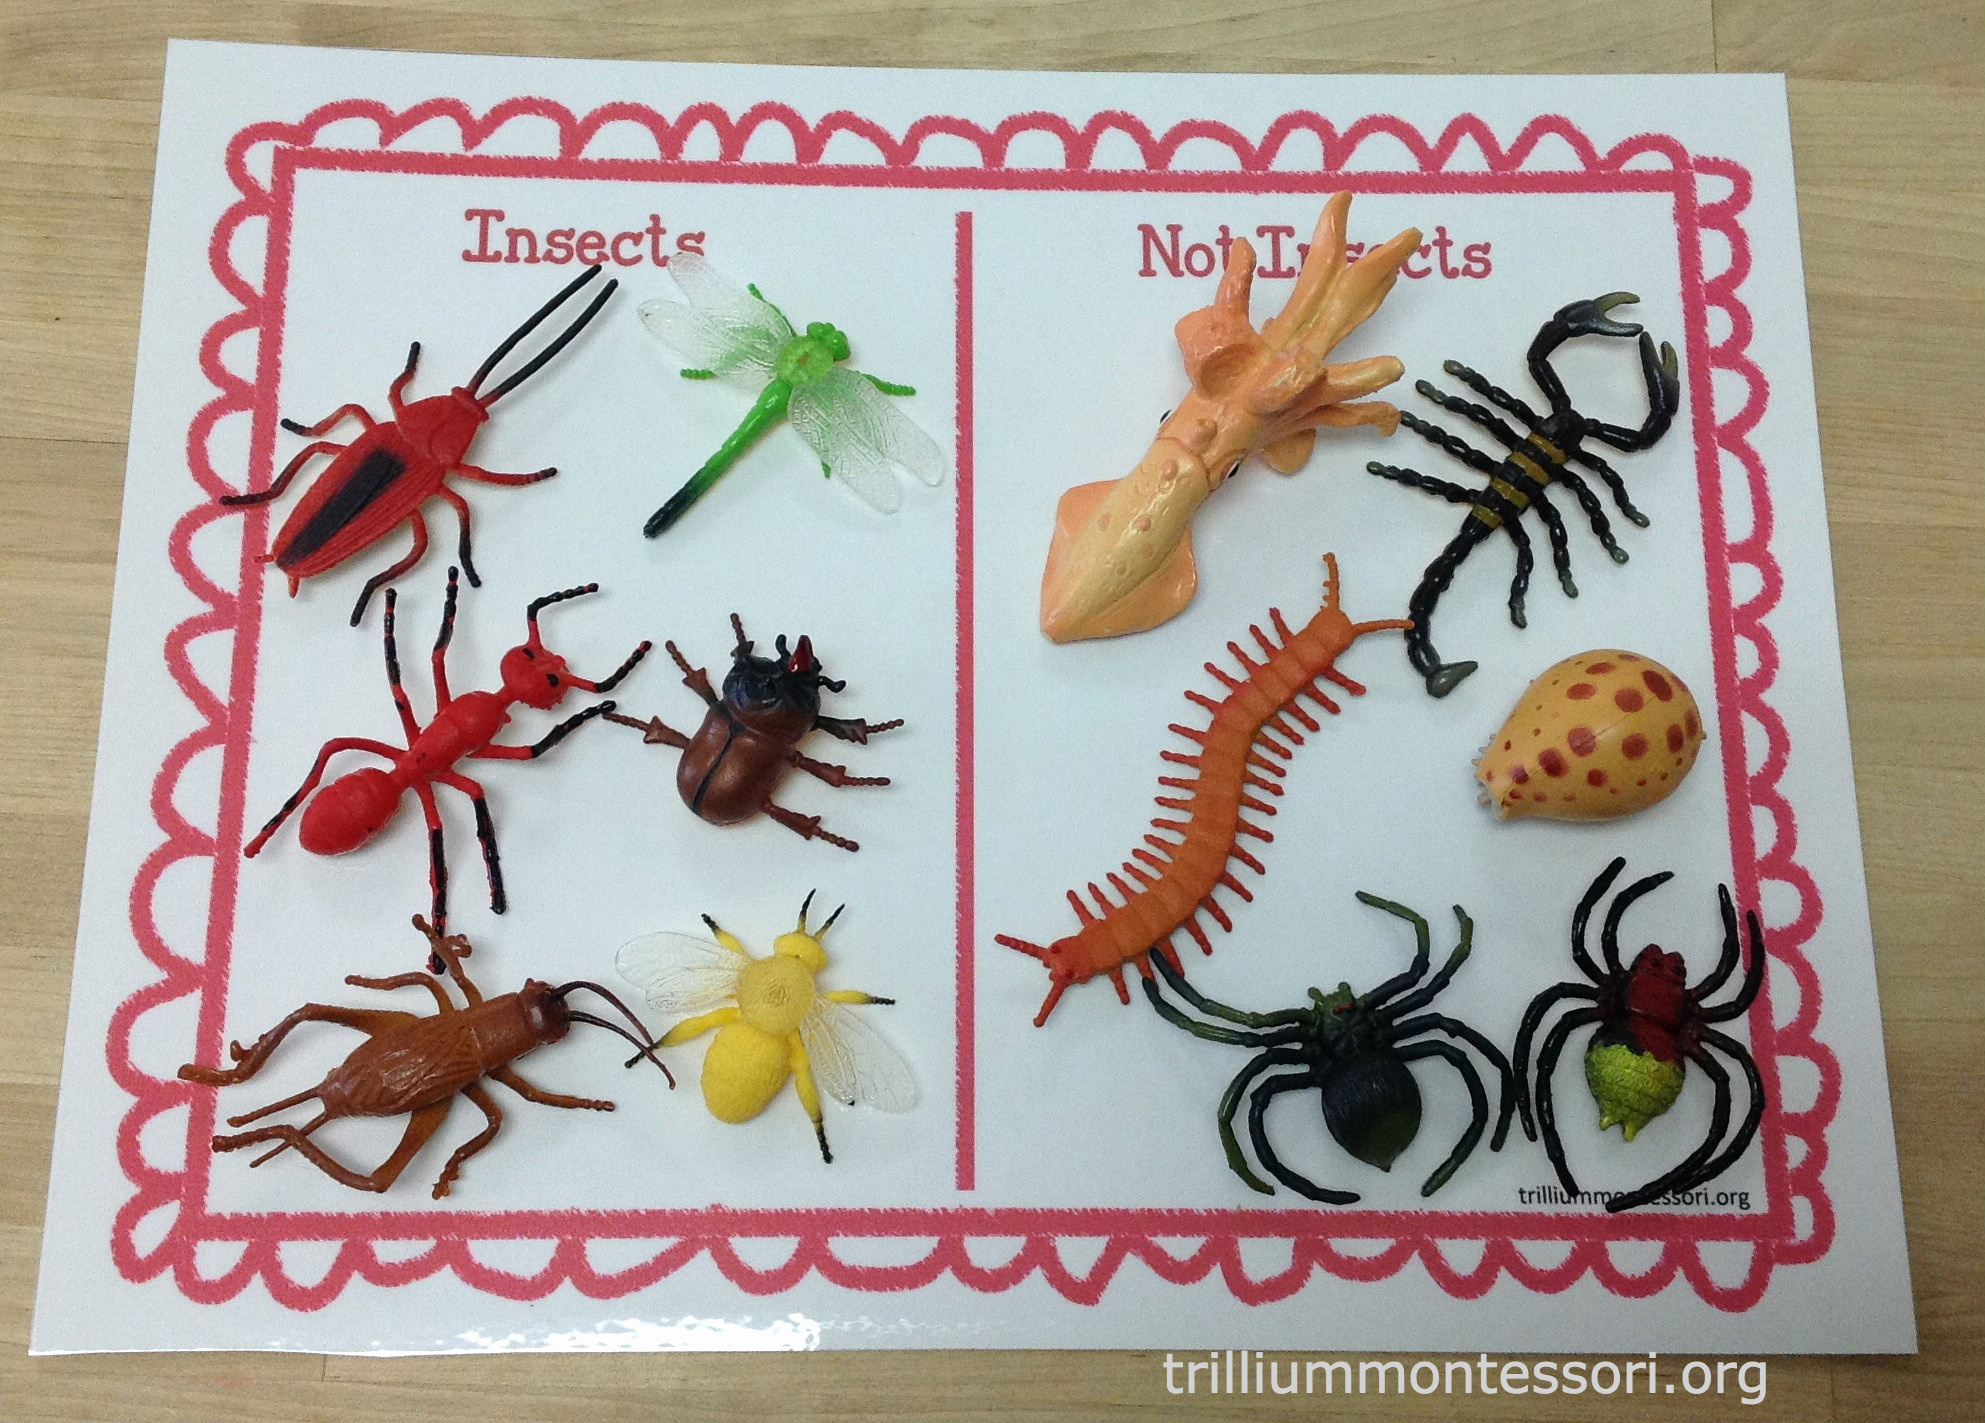 Insect Worksheets for Preschoolers Lovely Learning About Bugs Montessori Inspiration at Home